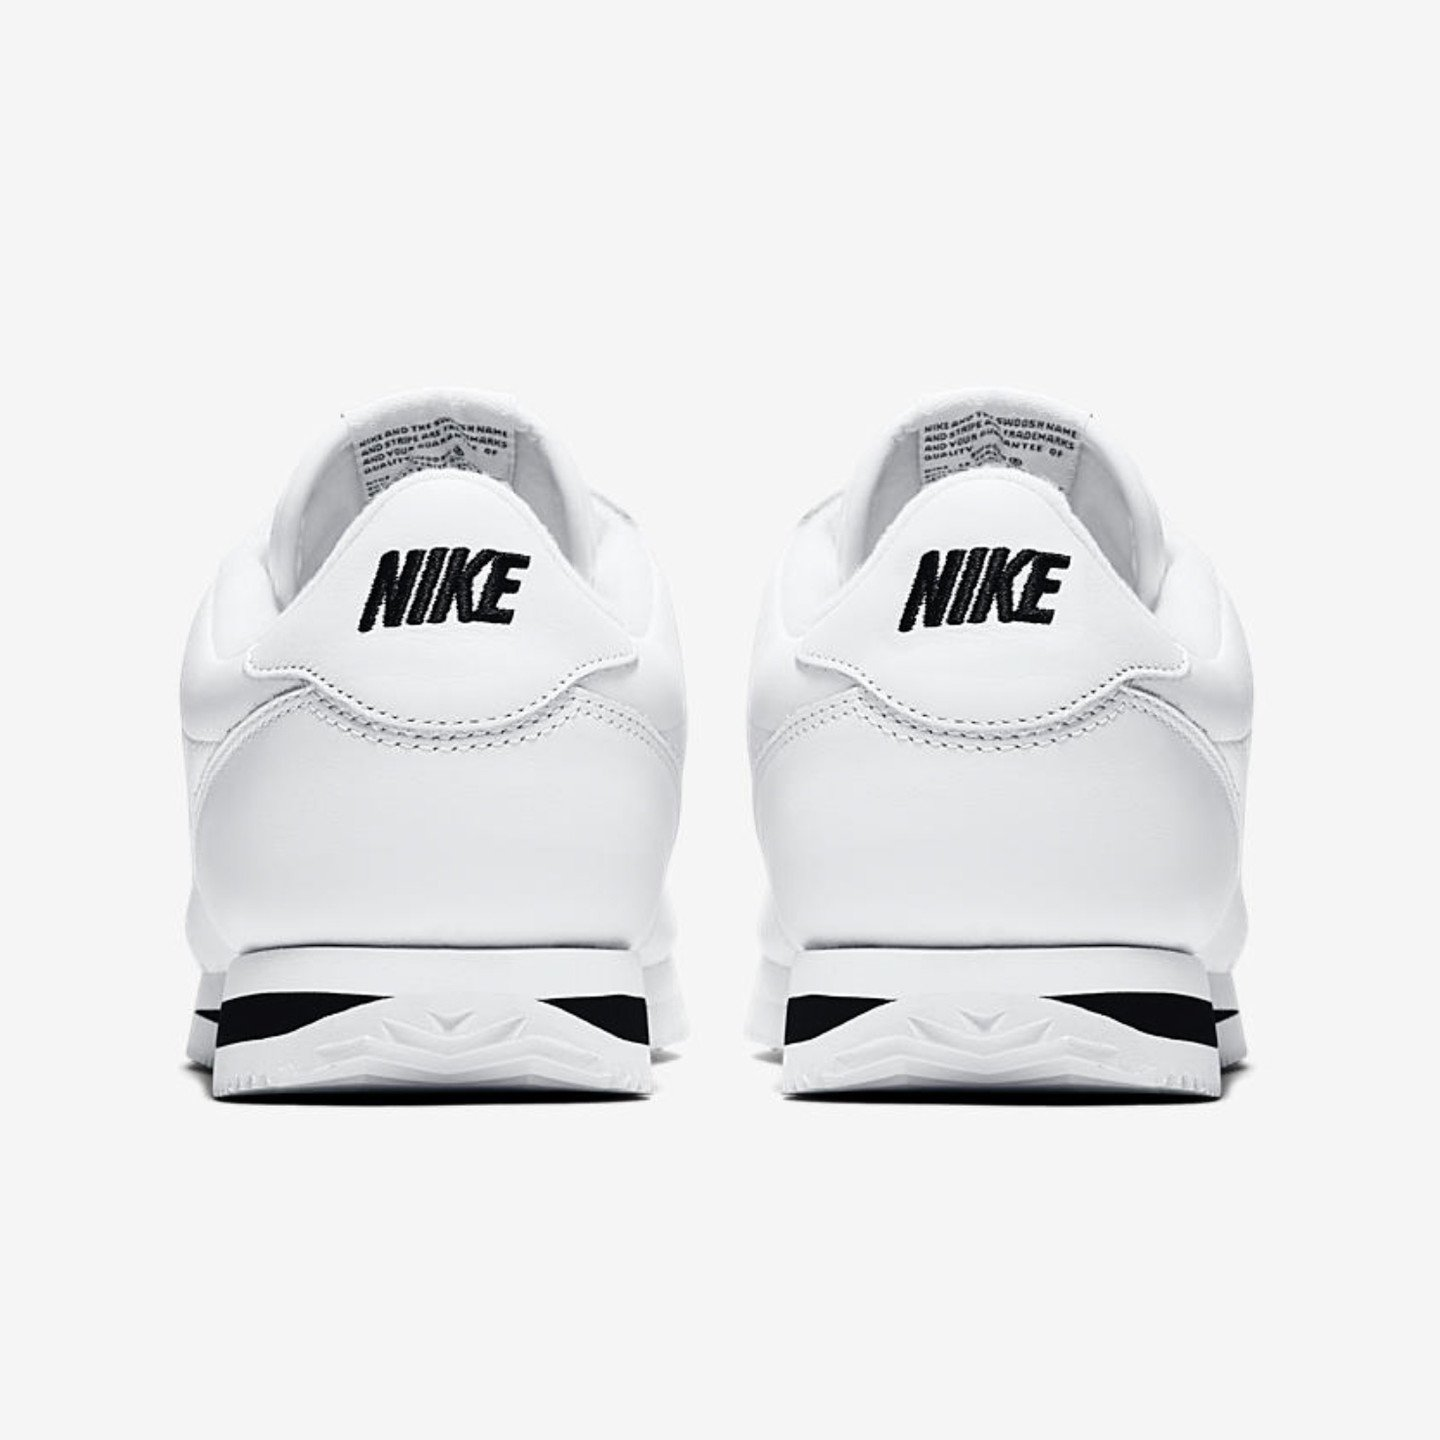 Nike Cortez Basic Jewel QS TZ White / Black 938343-101